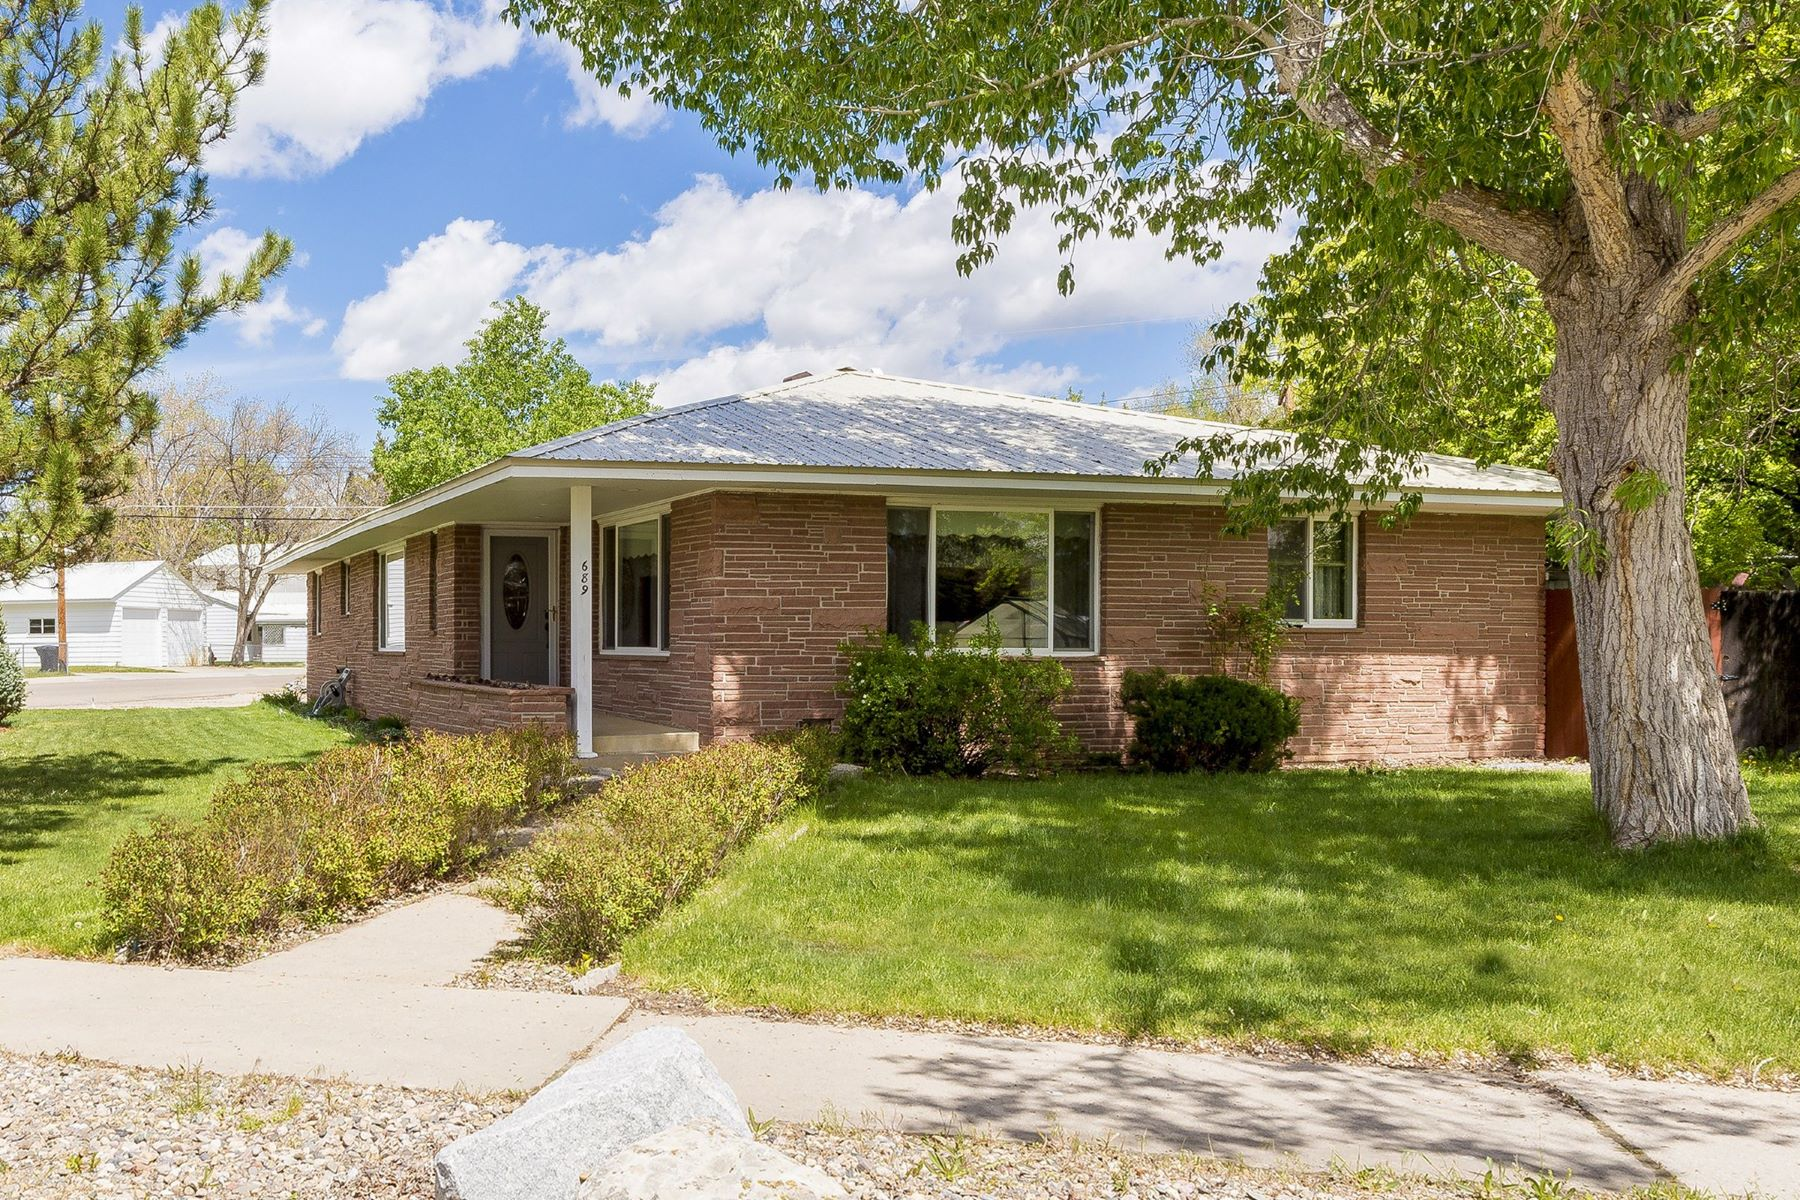 Single Family Home for Sale at Immaculate Classic Mid-Century Ranch Home 689 Pershing St. Craig, Colorado 81625 United States